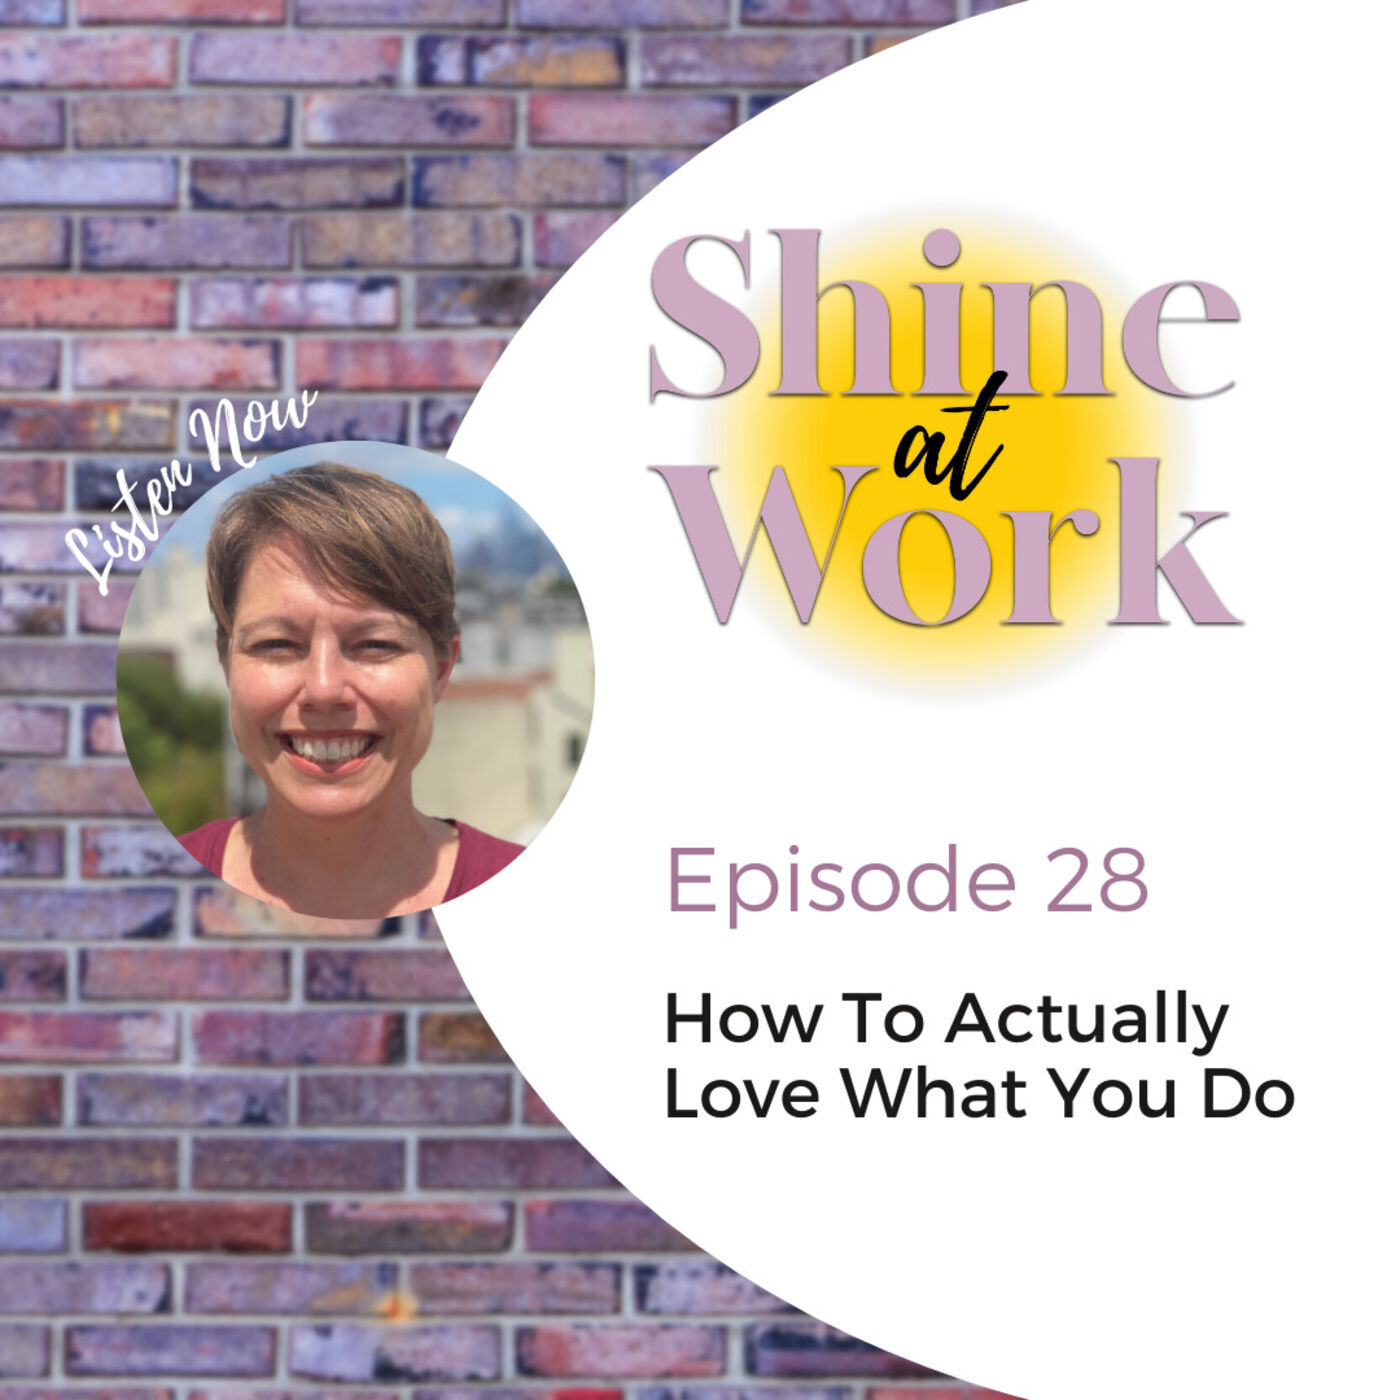 Episode 28 - How To Actually Love What You Do